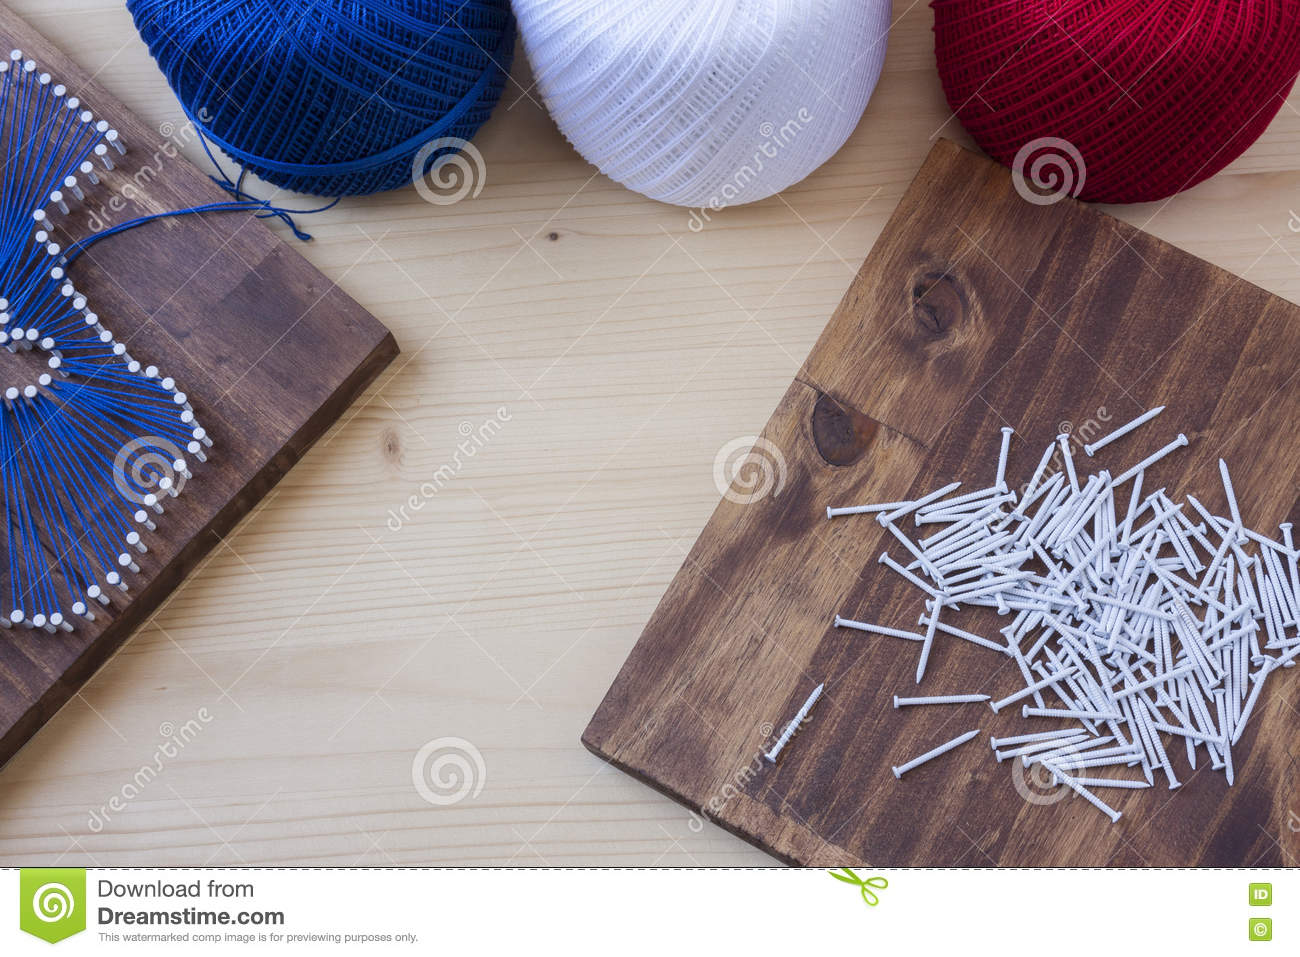 Texas State String Art Stock Image Image Of Nails Yarn 75215001